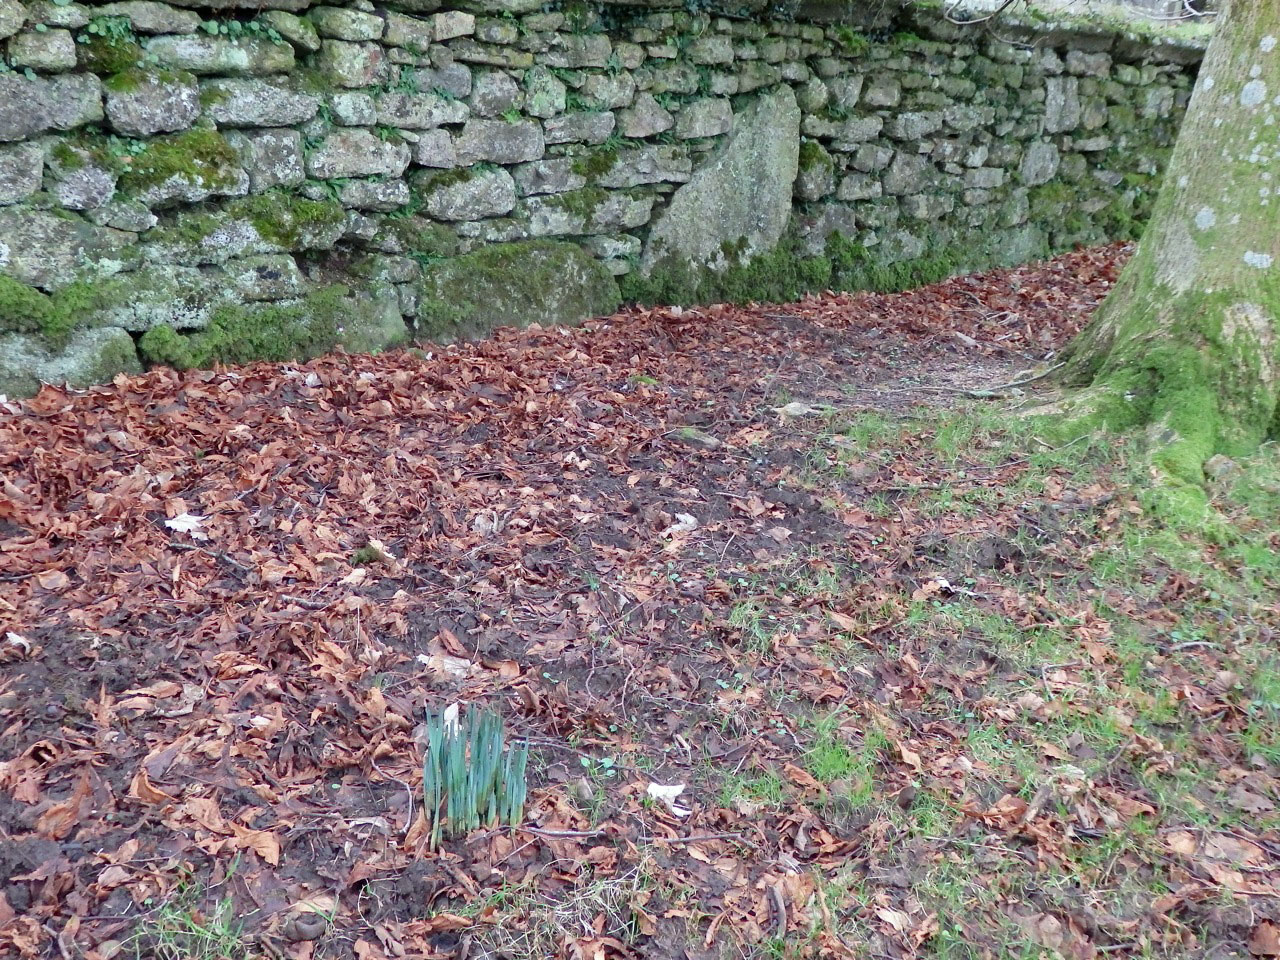 Daffodils sprouting beside the churchyard wall